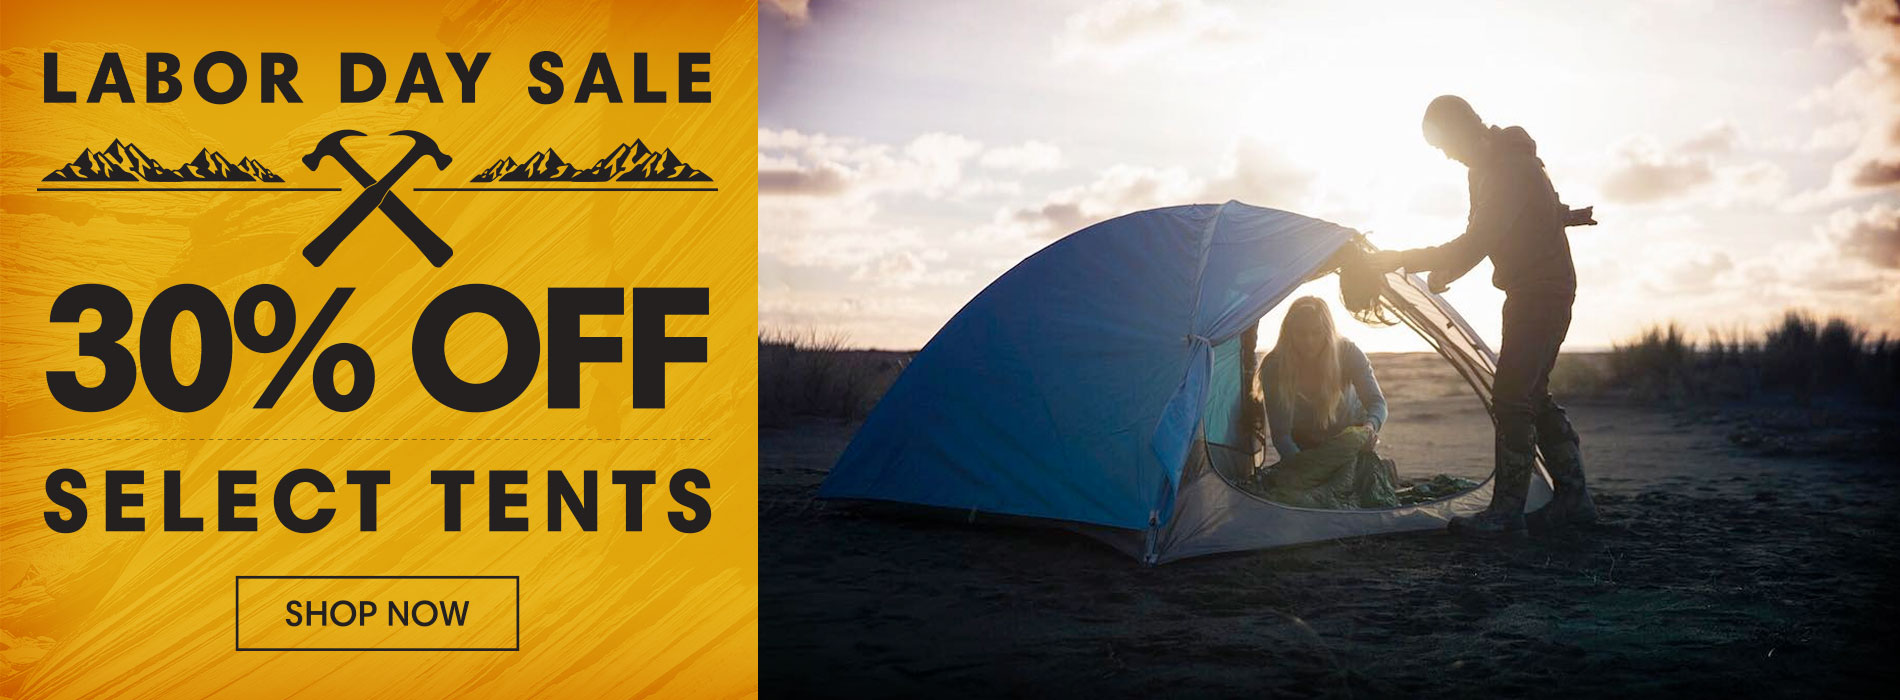 2017 Labor Day Sale Tents